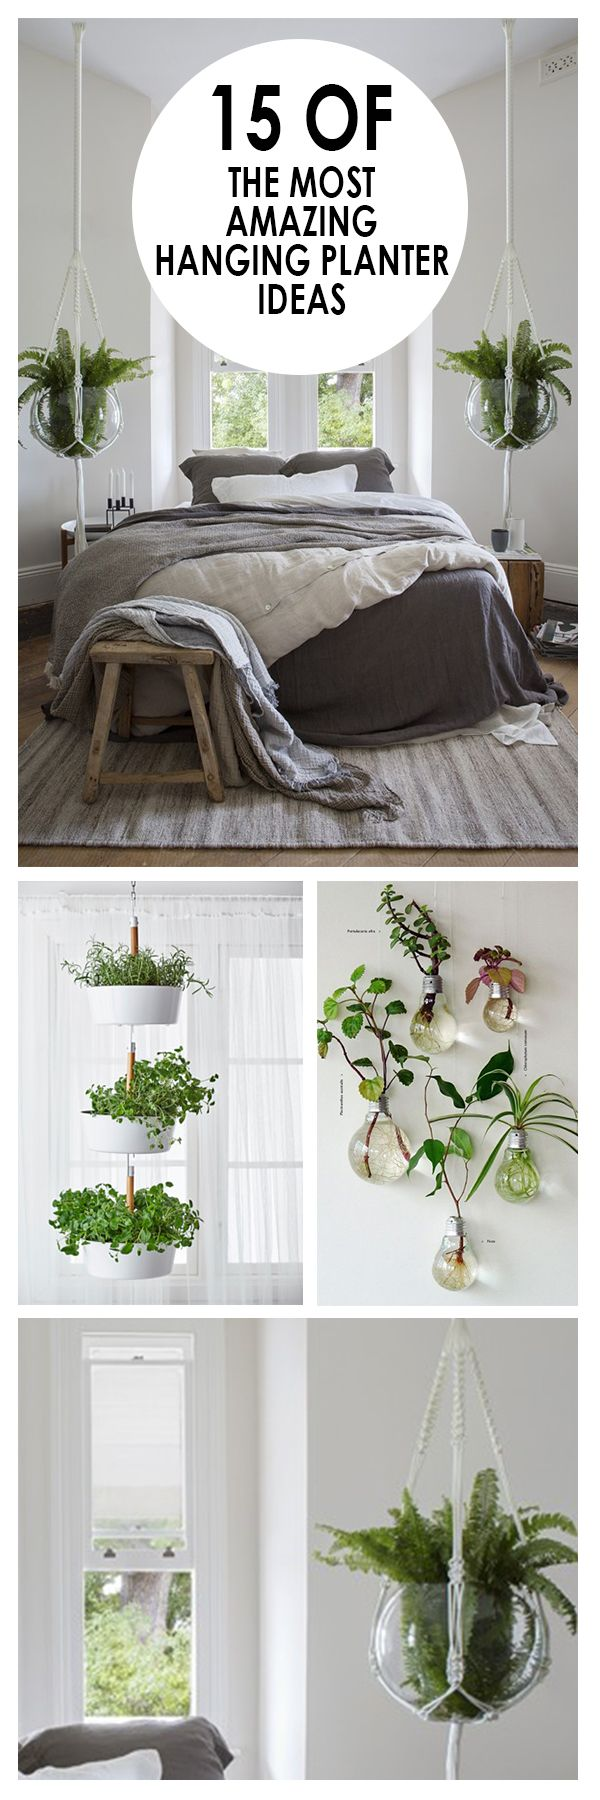 Hanging planters can be a fairly low maintenance and beautiful way to add some live plants to your home and yard. Here are 20 very different ideas to help you some inspiration of what will work for you.